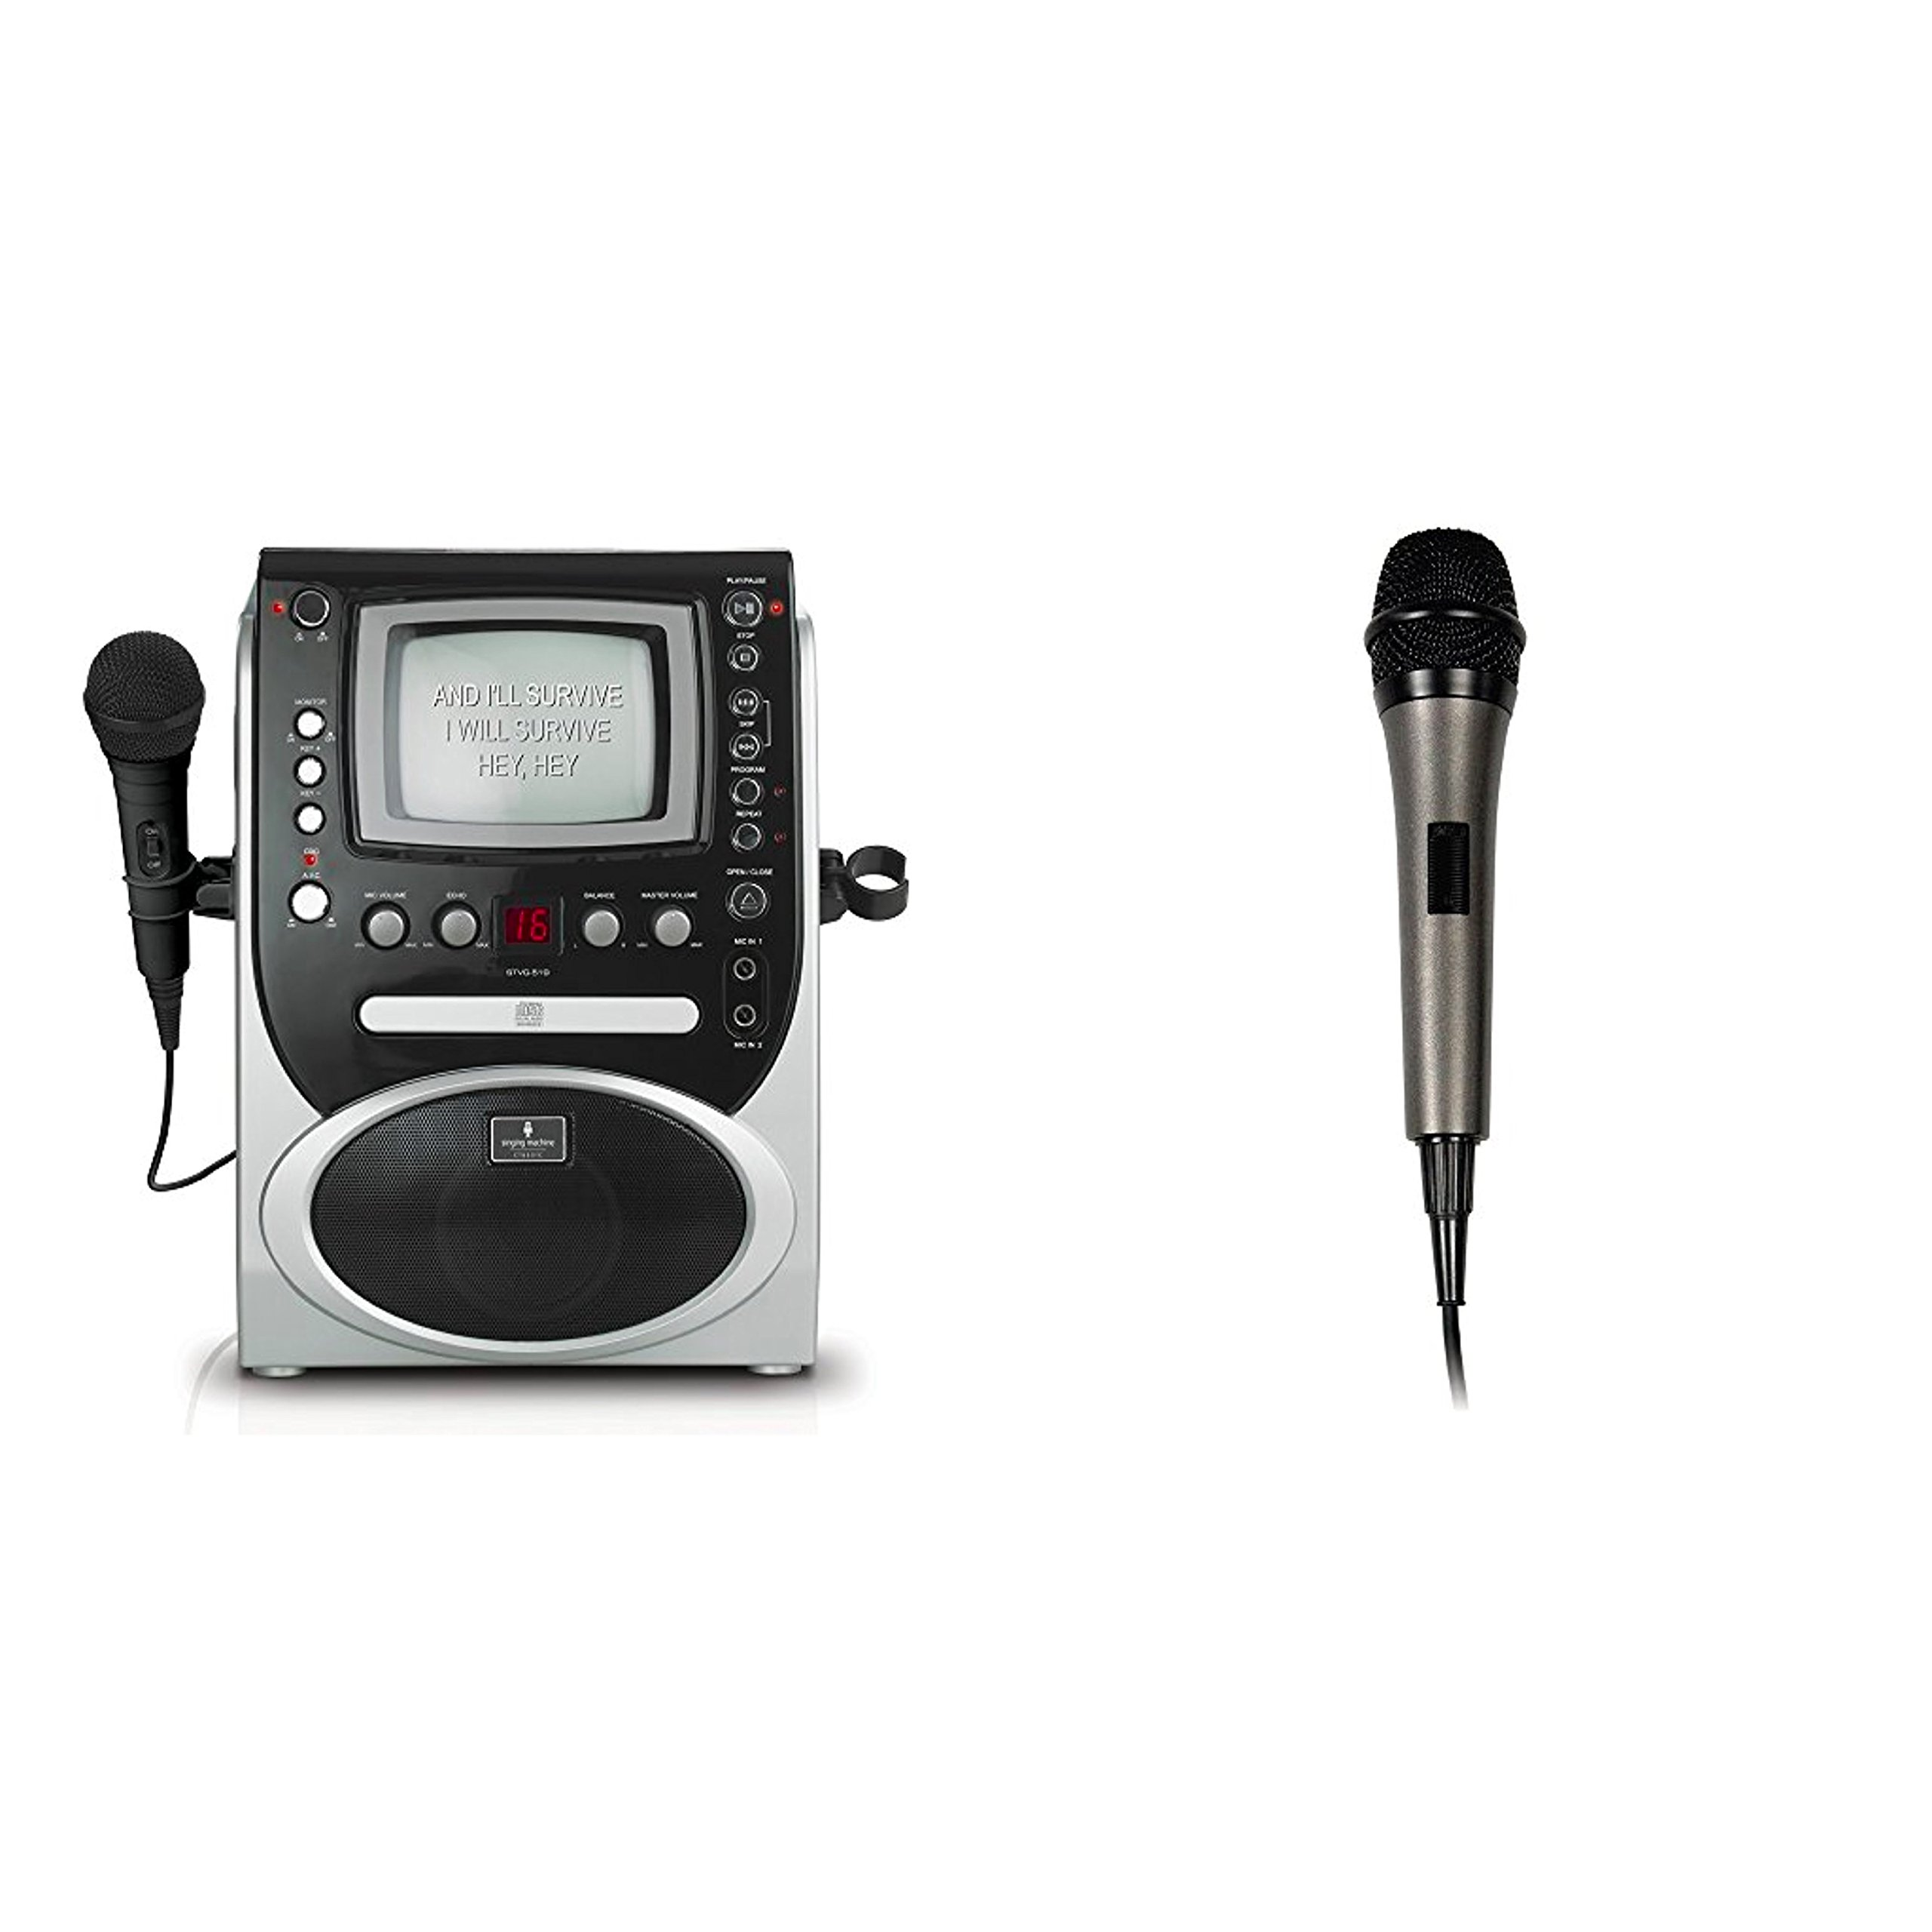 Bundle Includes 2 Items - Singing Machine STVG-519 CDG Karaoke Player and Singing Machine SMM-205 Unidirectional Dynamic Microphone with 10 Ft. Cord